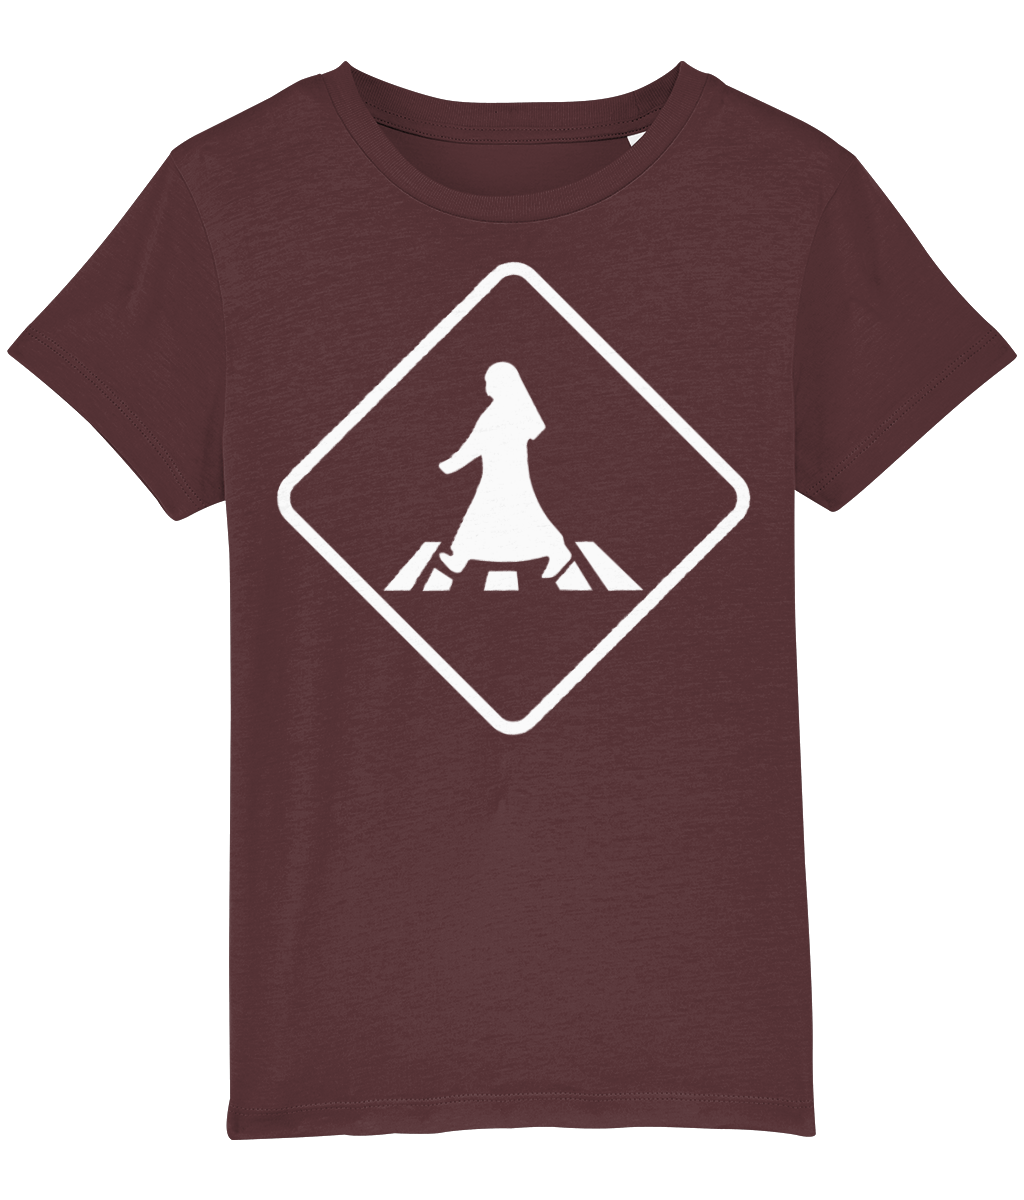 Pedestrian Crossing T-shirt for children in Maroon